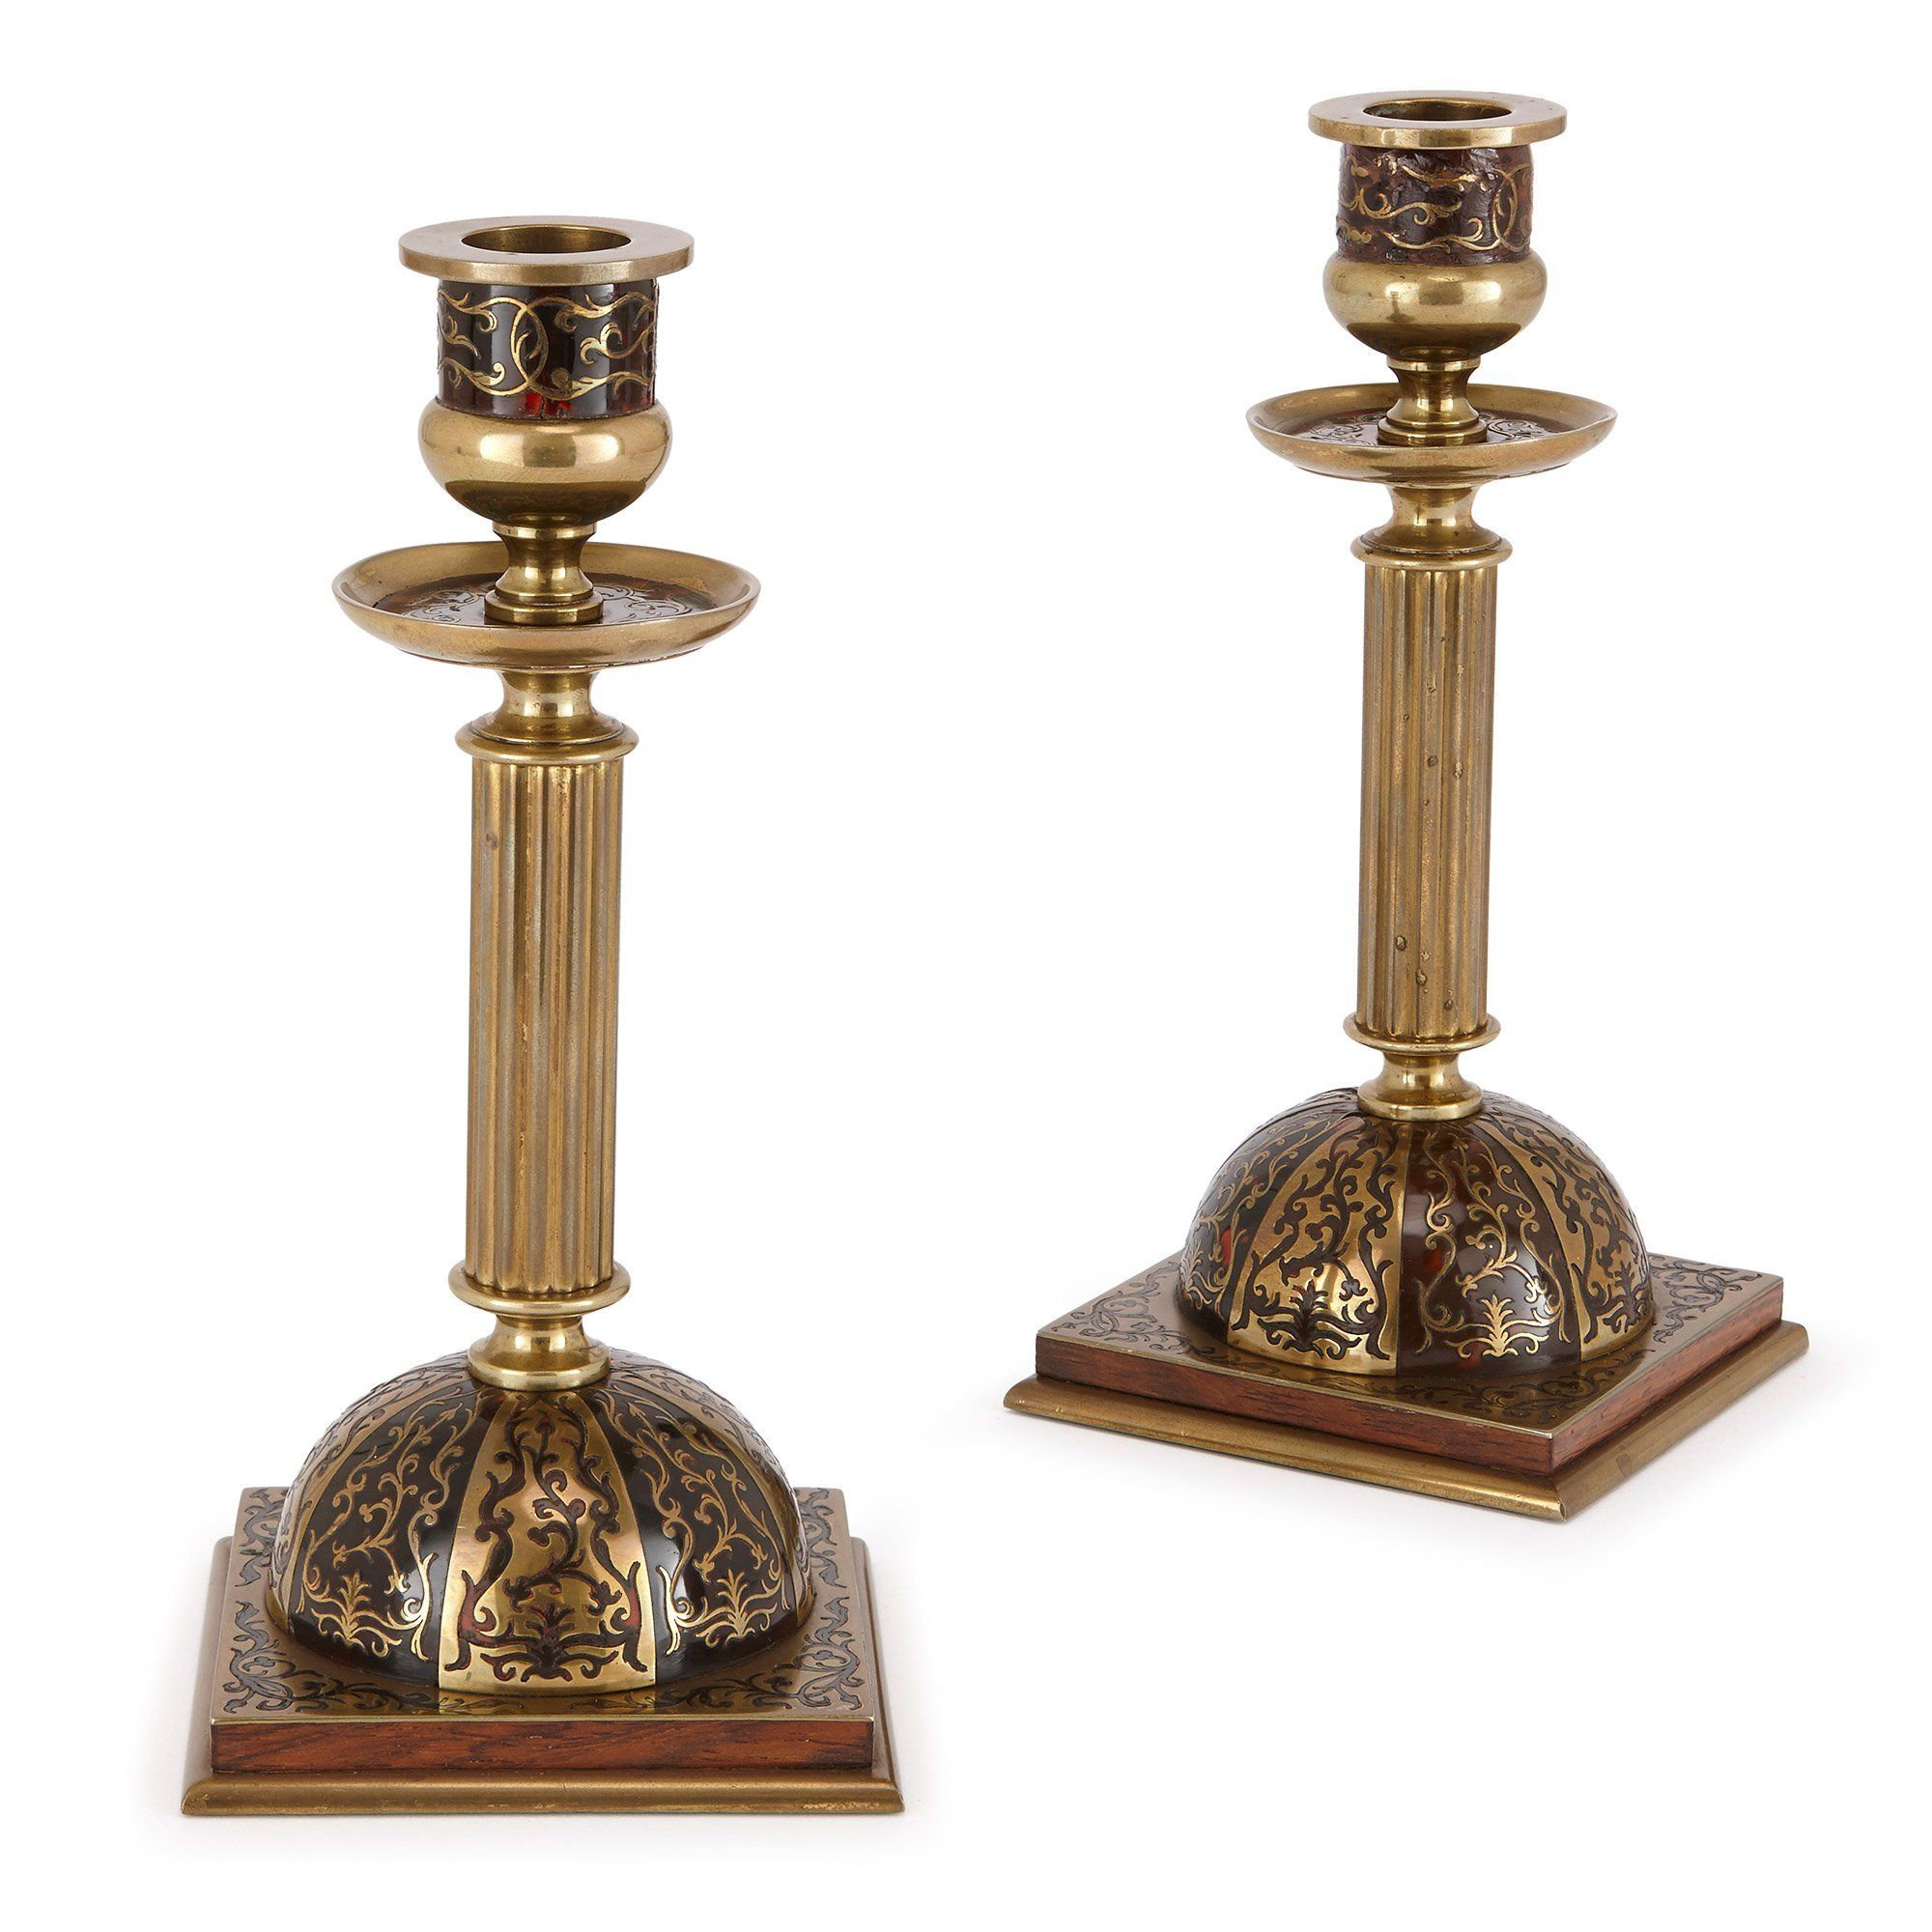 Pair Of Antique Brass Candlesticks With Boulle Decorations